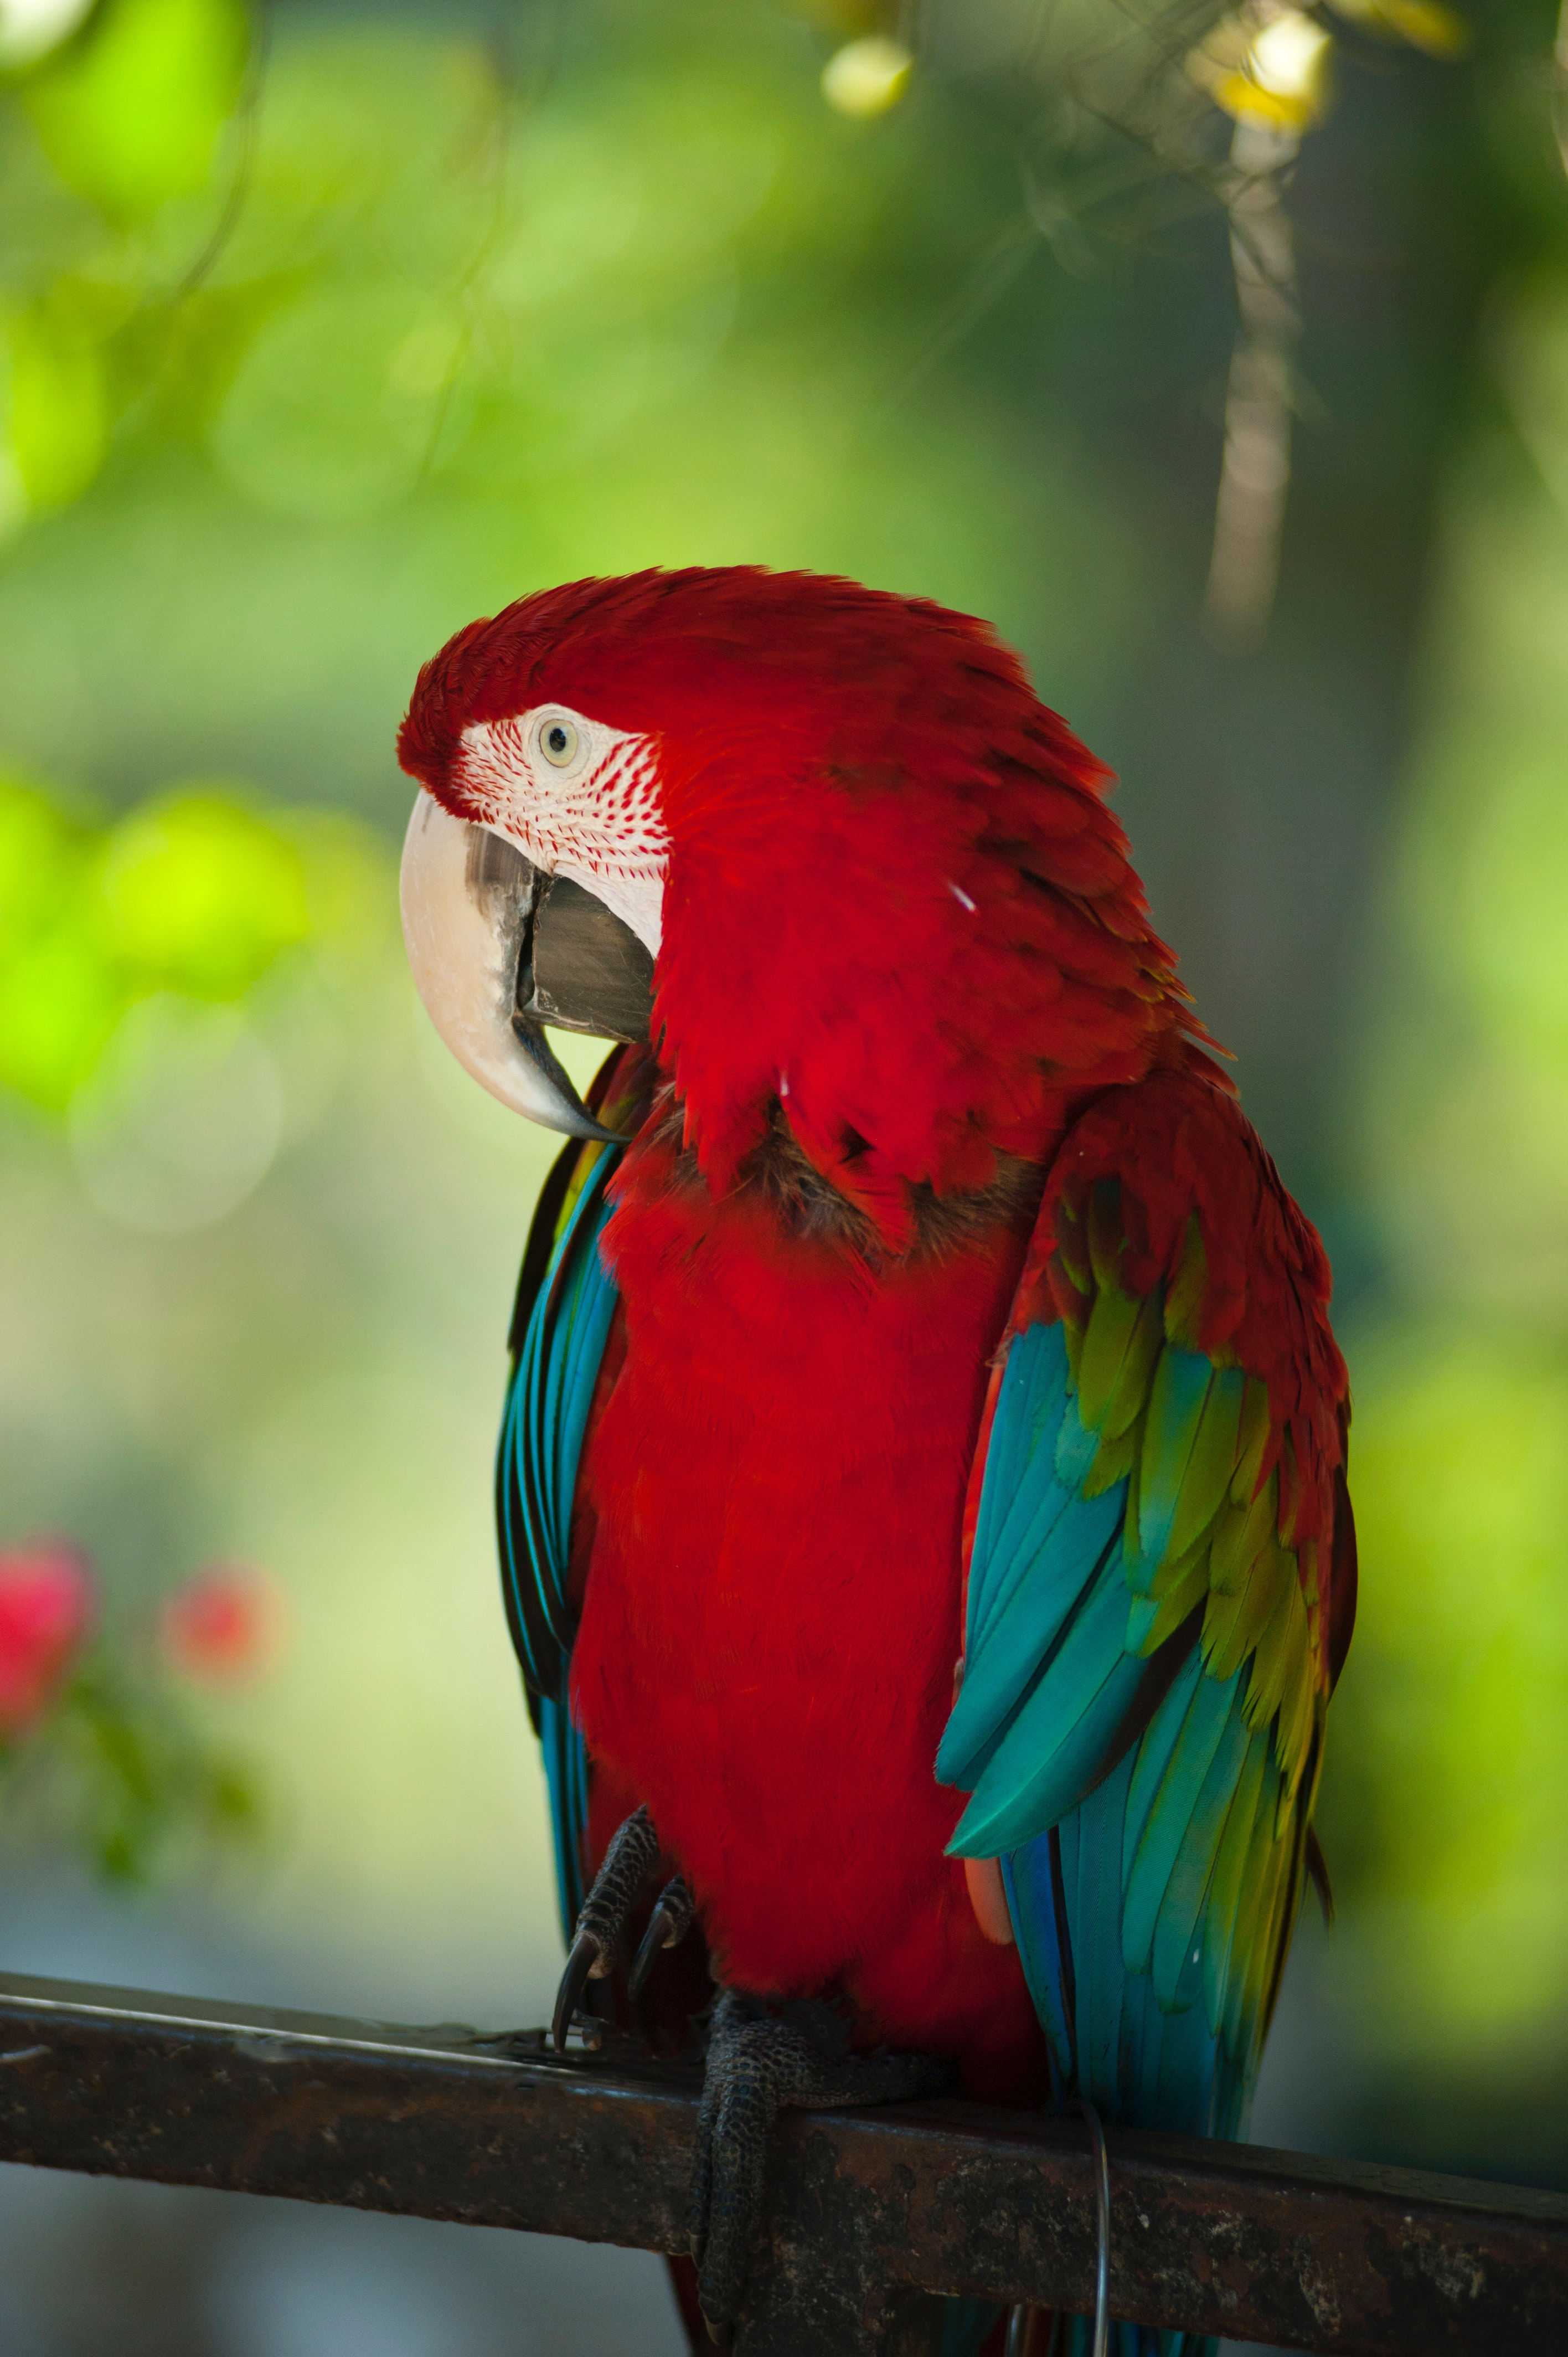 68122 download wallpaper Animals, Macaw, Parrots, Bird, Color, Wildlife screensavers and pictures for free